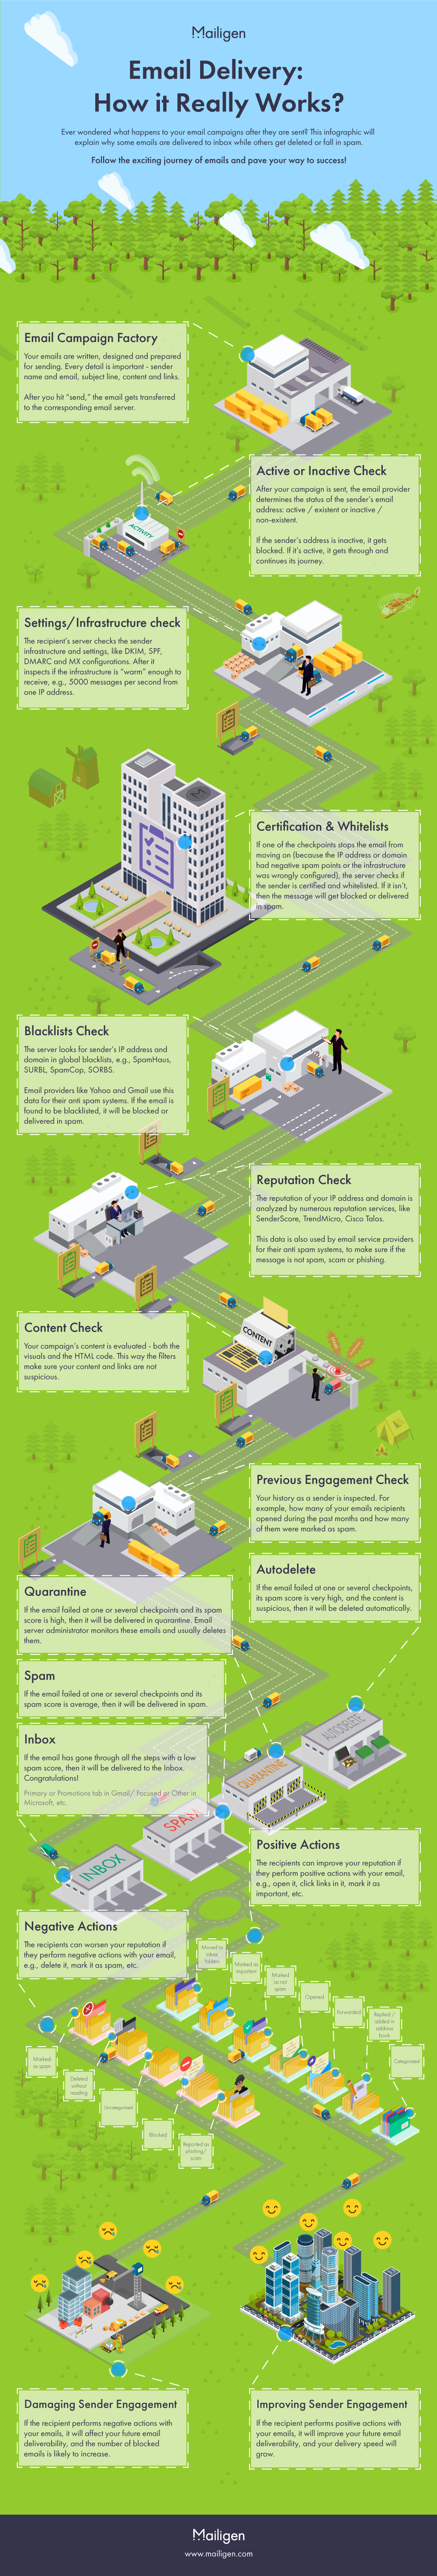 Infographic of Email delivery how it works and why it fails